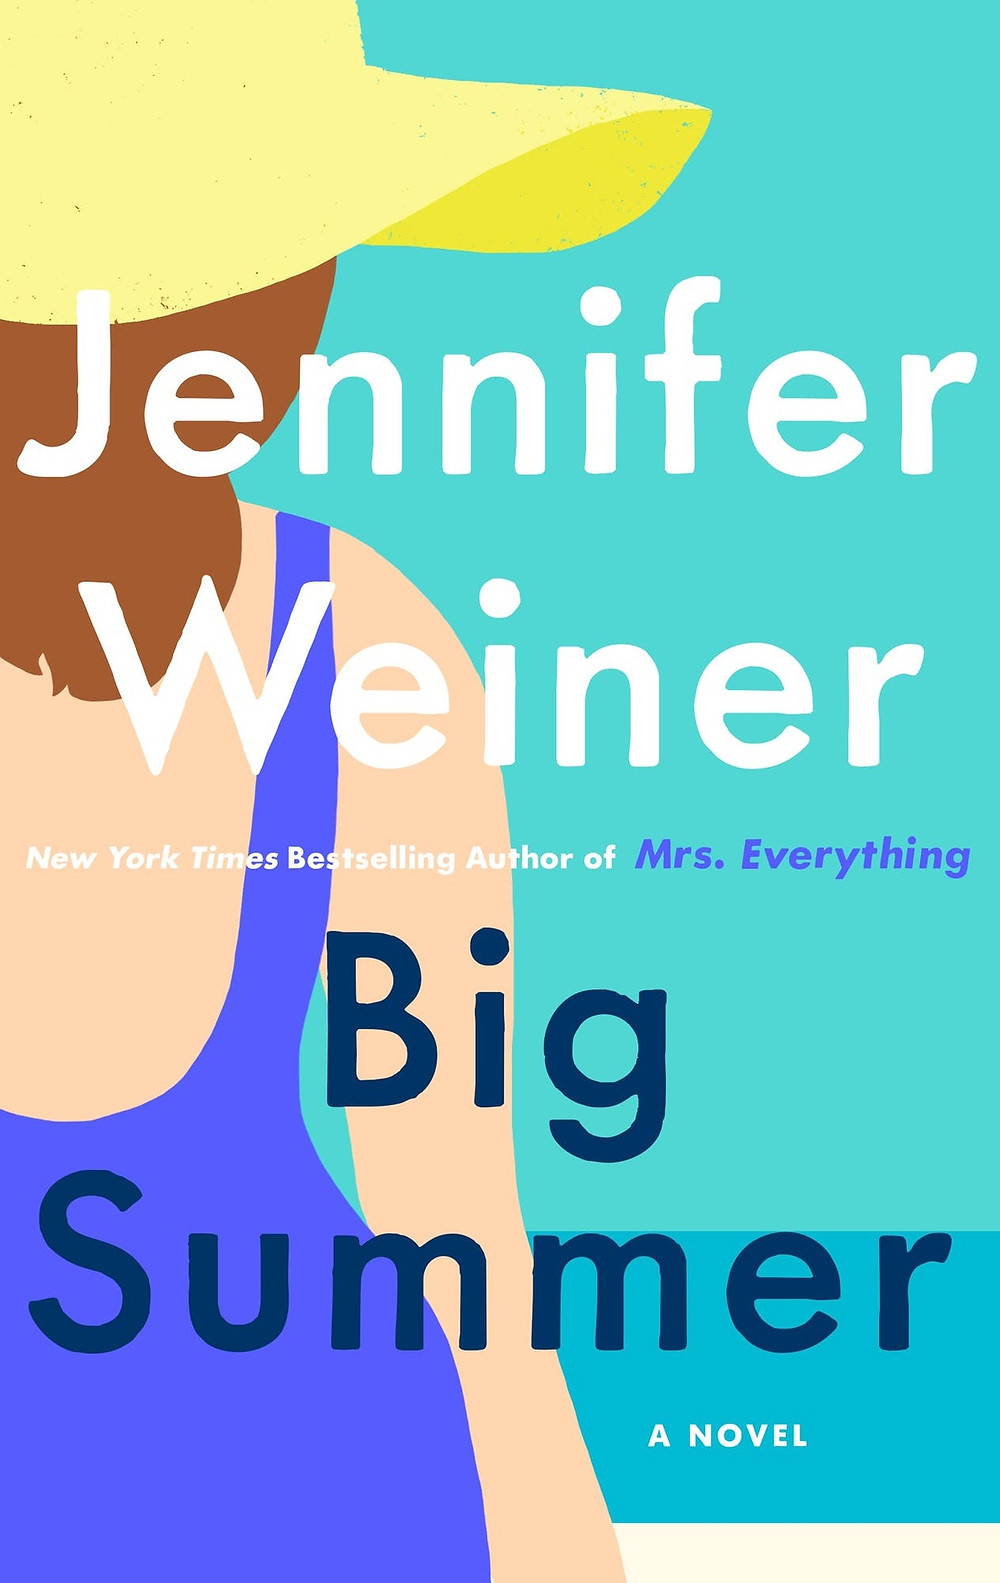 "Big Summer Jennifer Weiner, Named a Most Anticipated Book of 2020 by Literary Hub, PopSugar, LibraryReads, Booklist, and Library Journal ""Big Summer is the perfect beach read."" --PopSugar ""Friendship, weddings, and rich people being weird? Obviously I am in."" --Literary Hub ""If you love Jennifer Weiner, you'll love this one."" --Kirkus Reviews, starred review The #1 New York Times bestselling author of the ""nothing short of brilliant"" (People) Mrs. Everything returns with an unforgettable novel about friendship and forgiveness set during a disastrous wedding on picturesque Cape Cod. Six years after the fight that ended their friendship, Daphne Berg is shocked when Drue Cavanaugh walks back into her life, looking as lovely and successful as ever, with a massive favor to ask. Daphne hasn't spoken one word to Drue in all this time--she doesn't even hate-follow her ex-best friend on social media--so when Drue asks if she will be her maid-of-honor at the society wedding of the summer, Daphne is rightfully speechless. Drue was always the one who had everything--except the ability to hold onto friends. Meanwhile, Daphne's no longer the same self-effacing sidekick she was back in high school. She's built a life that she loves, including a growing career as a plus-size Instagram influencer. Letting glamorous, seductive Drue back into her life is risky, but it comes with an invitation to spend a weekend in a waterfront Cape Cod mansion. When Drue begs and pleads and dangles the prospect of cute single guys, Daphne finds herself powerless as ever to resist her friend's siren song. A sparkling novel about the complexities of female relationships, the pitfalls of living out loud and online, and the resilience of the human heart, Big Summer is a witty, moving story about family, friendship, and figuring out what matters most. thebookslut book reviews, the book slut, thebookslut.com Publisher: Atria Books Published Date: May 05, 2020 Pages: 368 Dimensions: 6.1 X 1.4 X 9.1 inches 